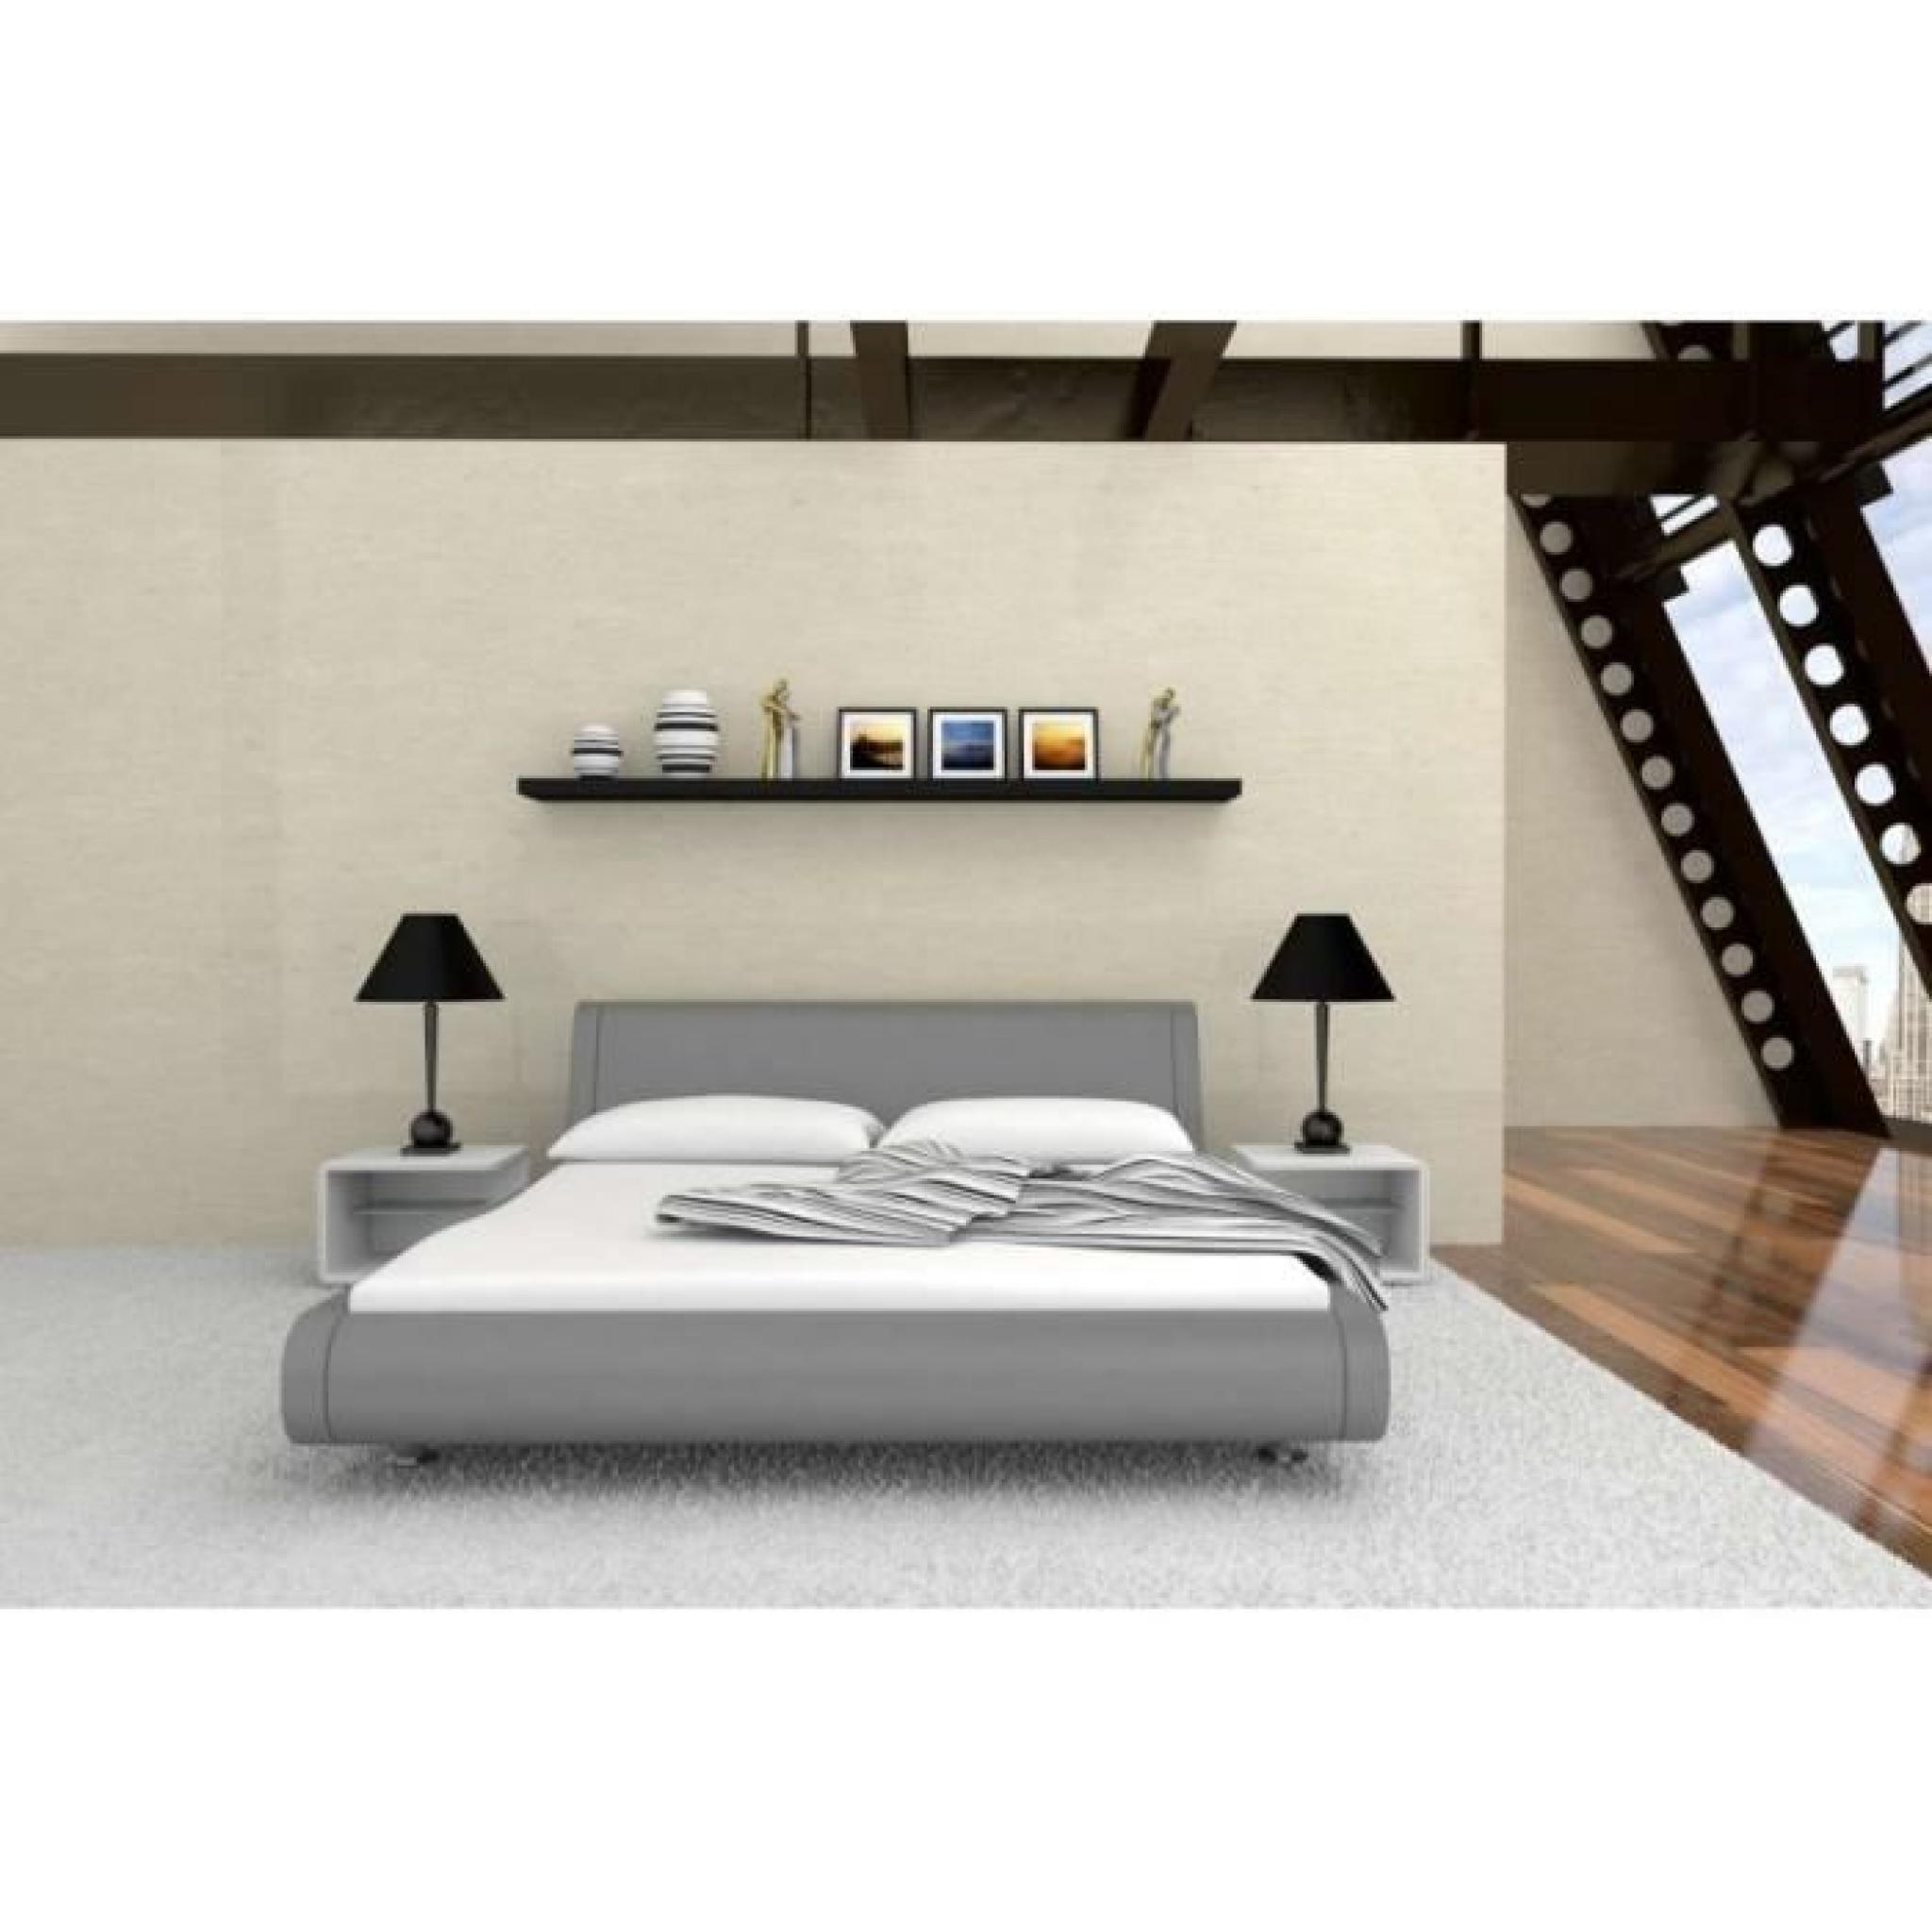 justhome mondo gris lit rembourr en cuir cologique taille 140 x 200 cm achat vente lit pas. Black Bedroom Furniture Sets. Home Design Ideas